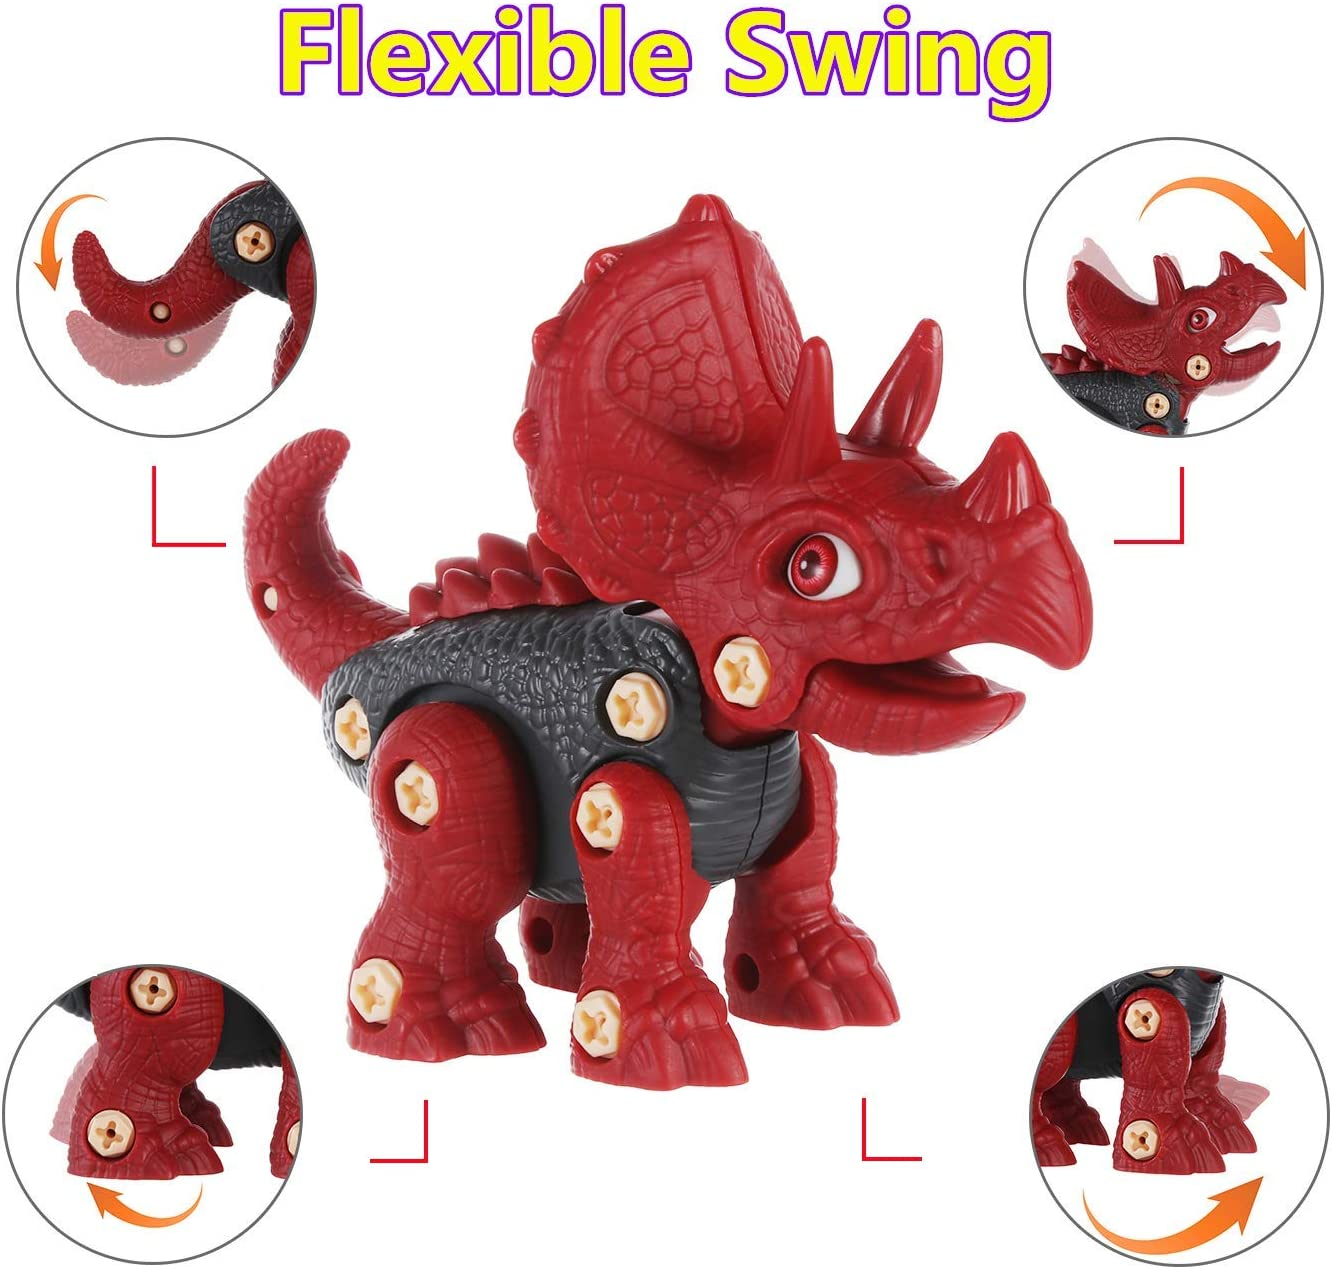 DYJKOUG Take Apart Dinosaur Toys for Kids 3 Packs STEM Toys with Electric Drill and Plastic Screwdriver Best Gift for 3 4 5 6 7 Years Old Boys and Girls